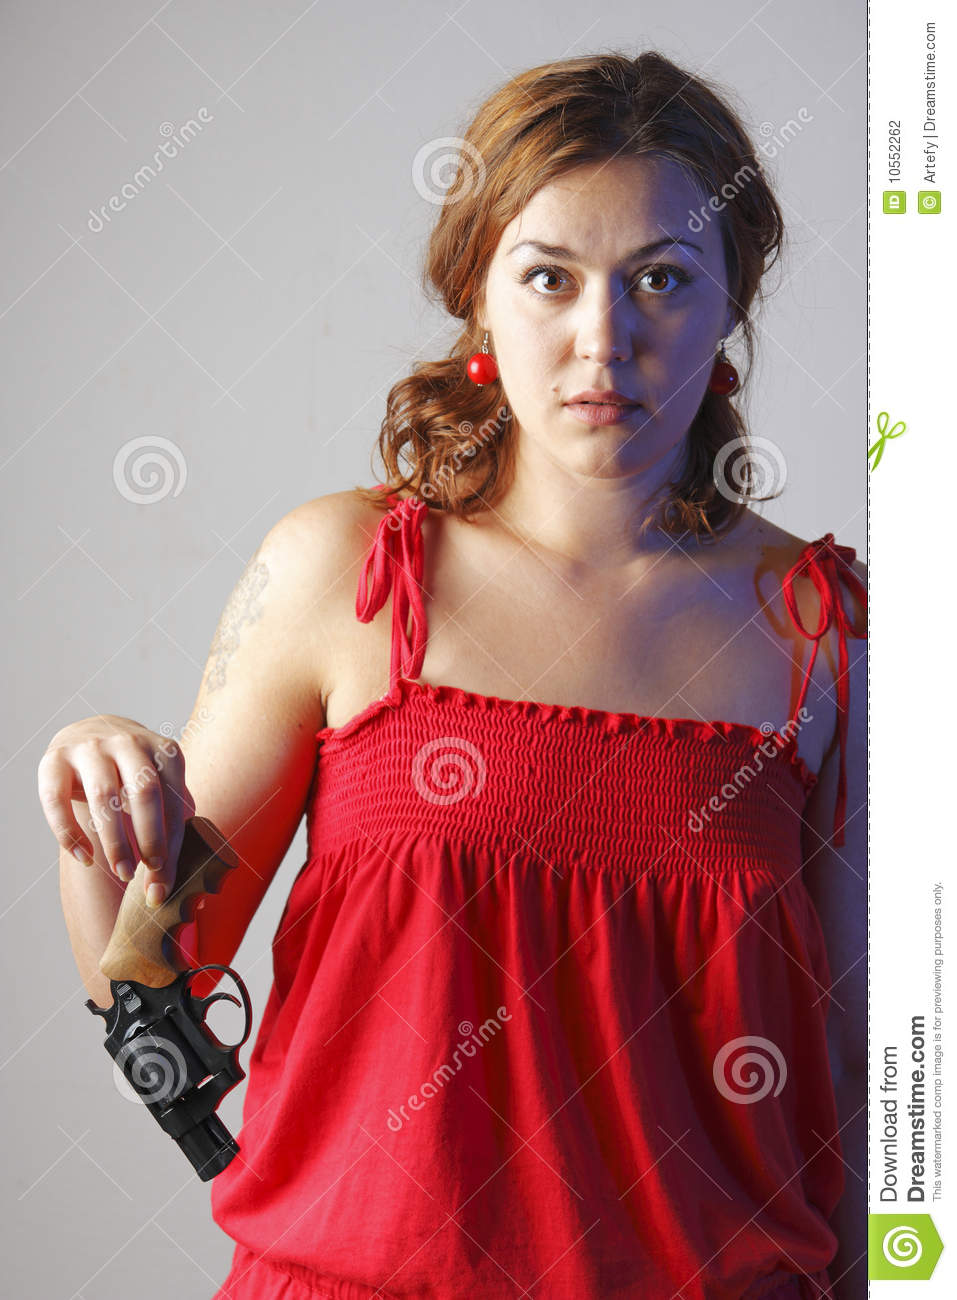 Got Red Nails For Prom Jems And Sparkles Were Added: Girl In Red Has Got A Gun Stock Photo. Image Of People